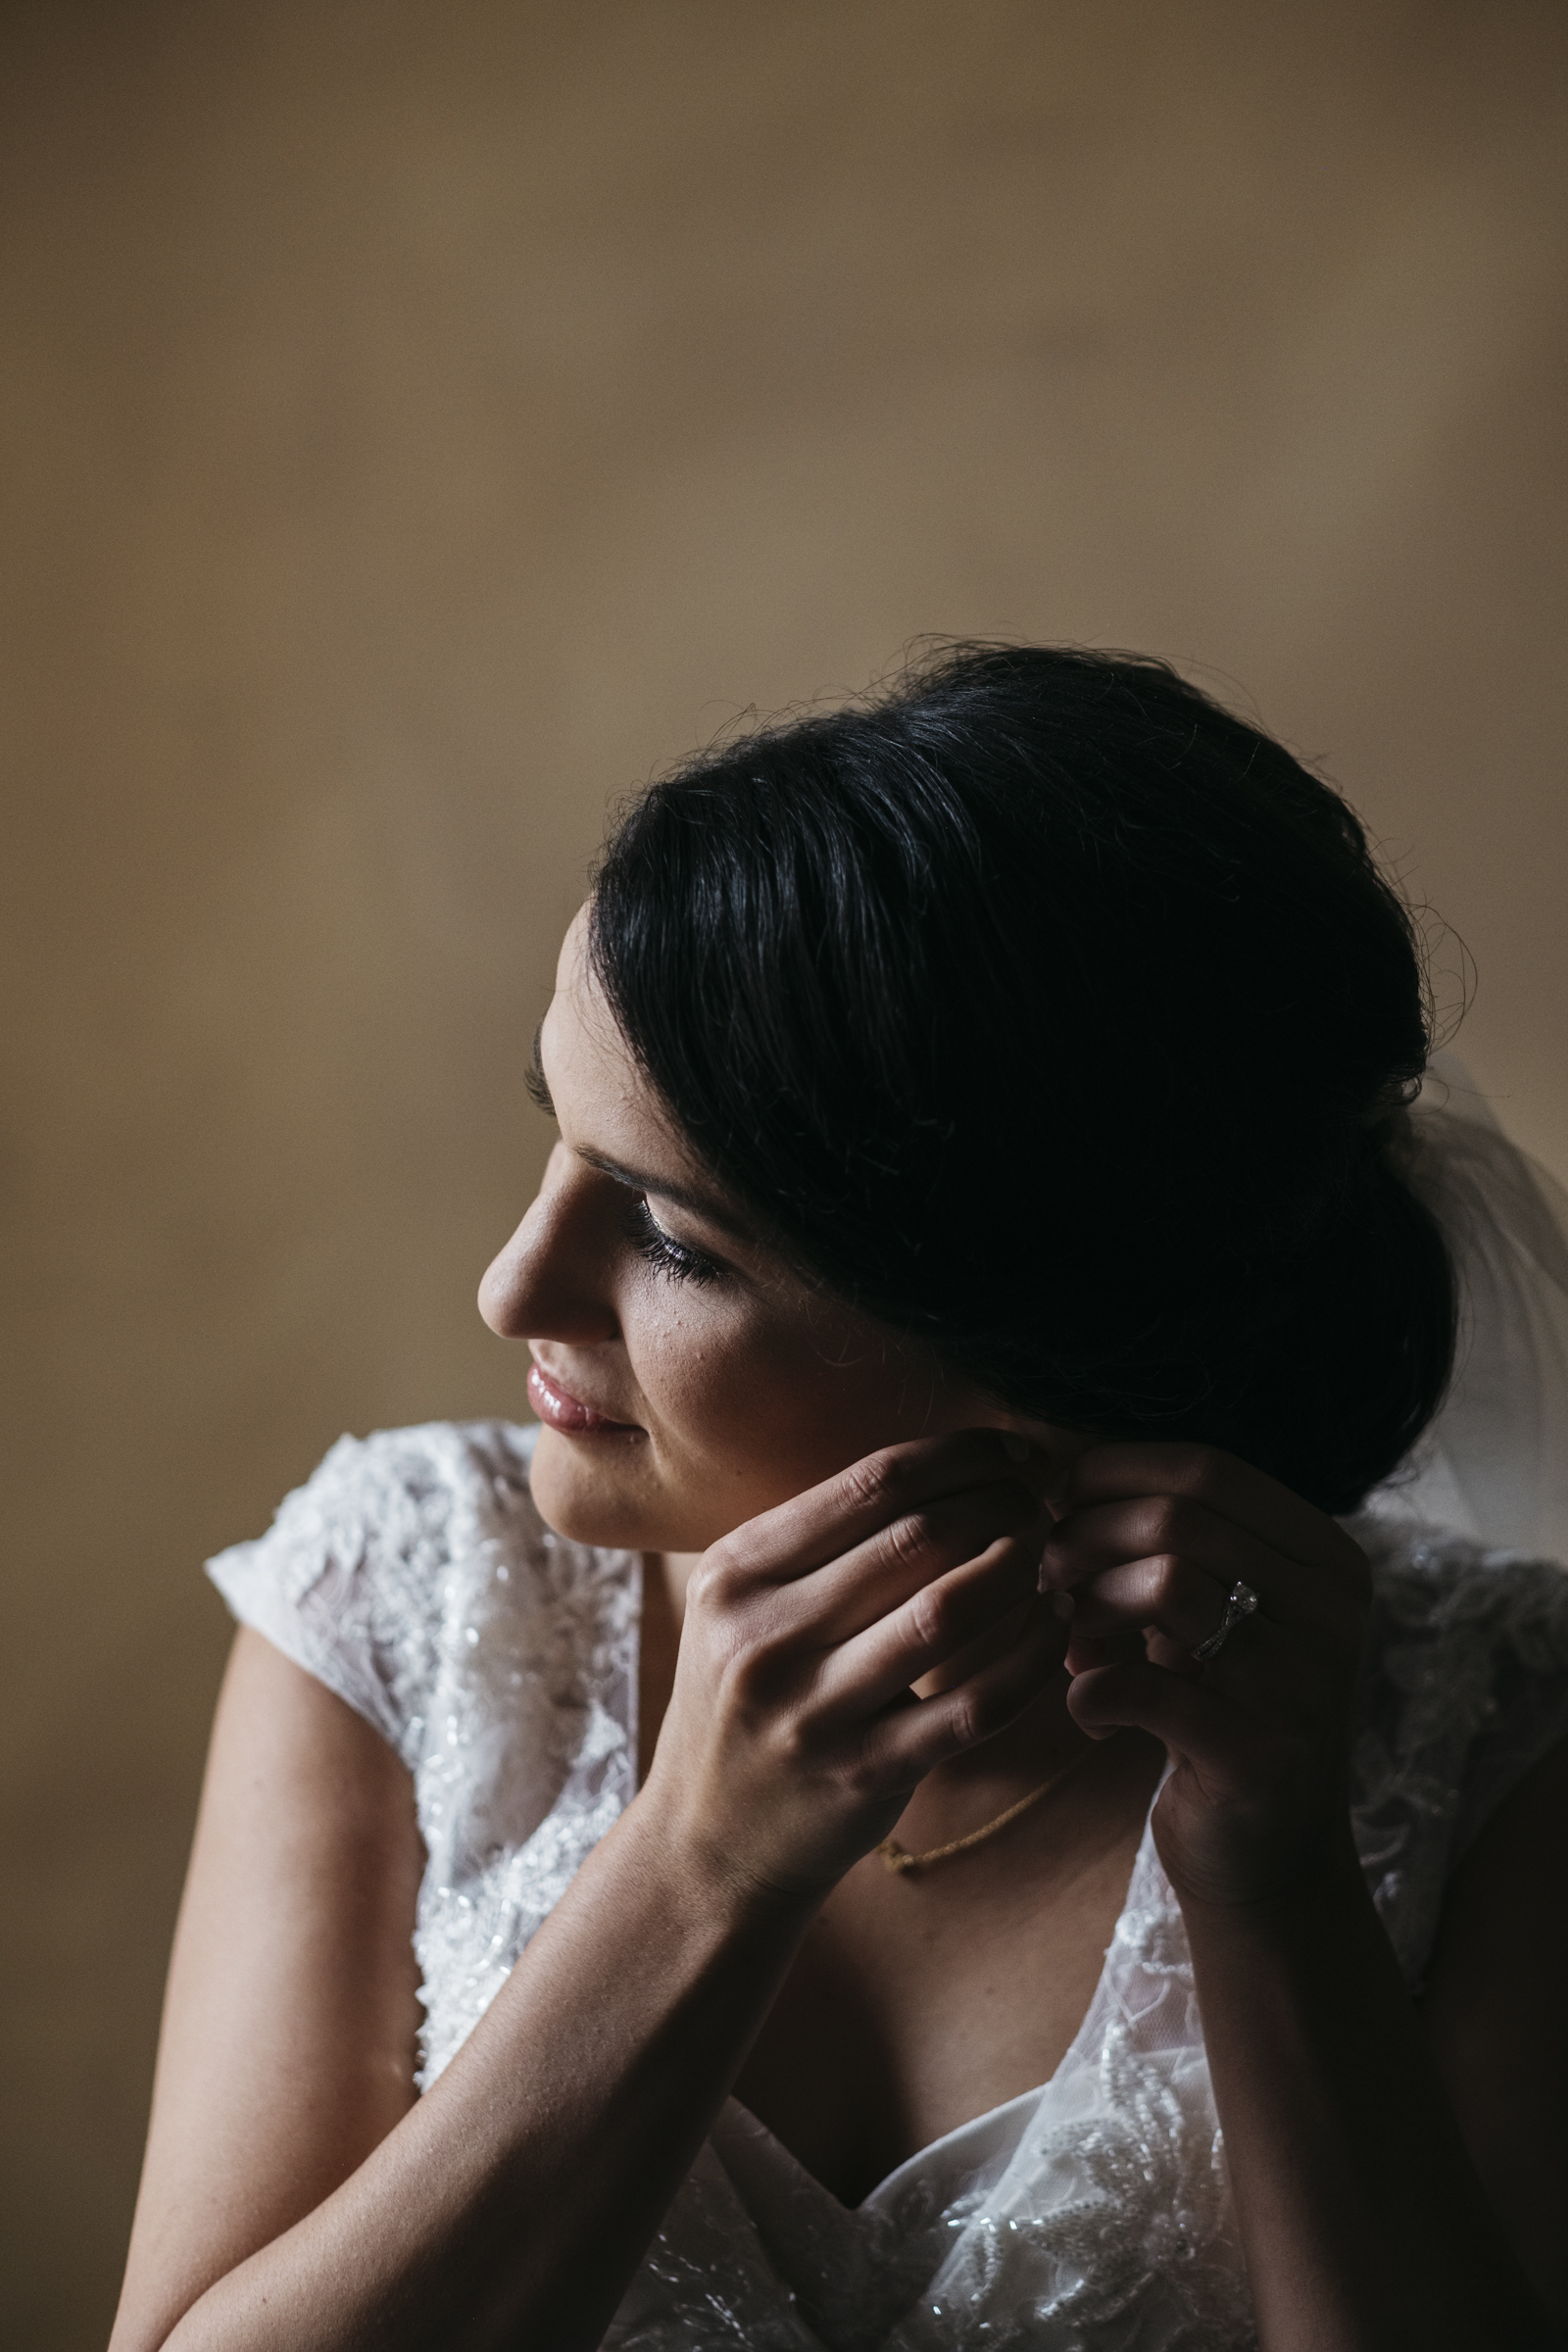 Bride fixes her earrings before her wedding ceremony at Fremont church in Ohio